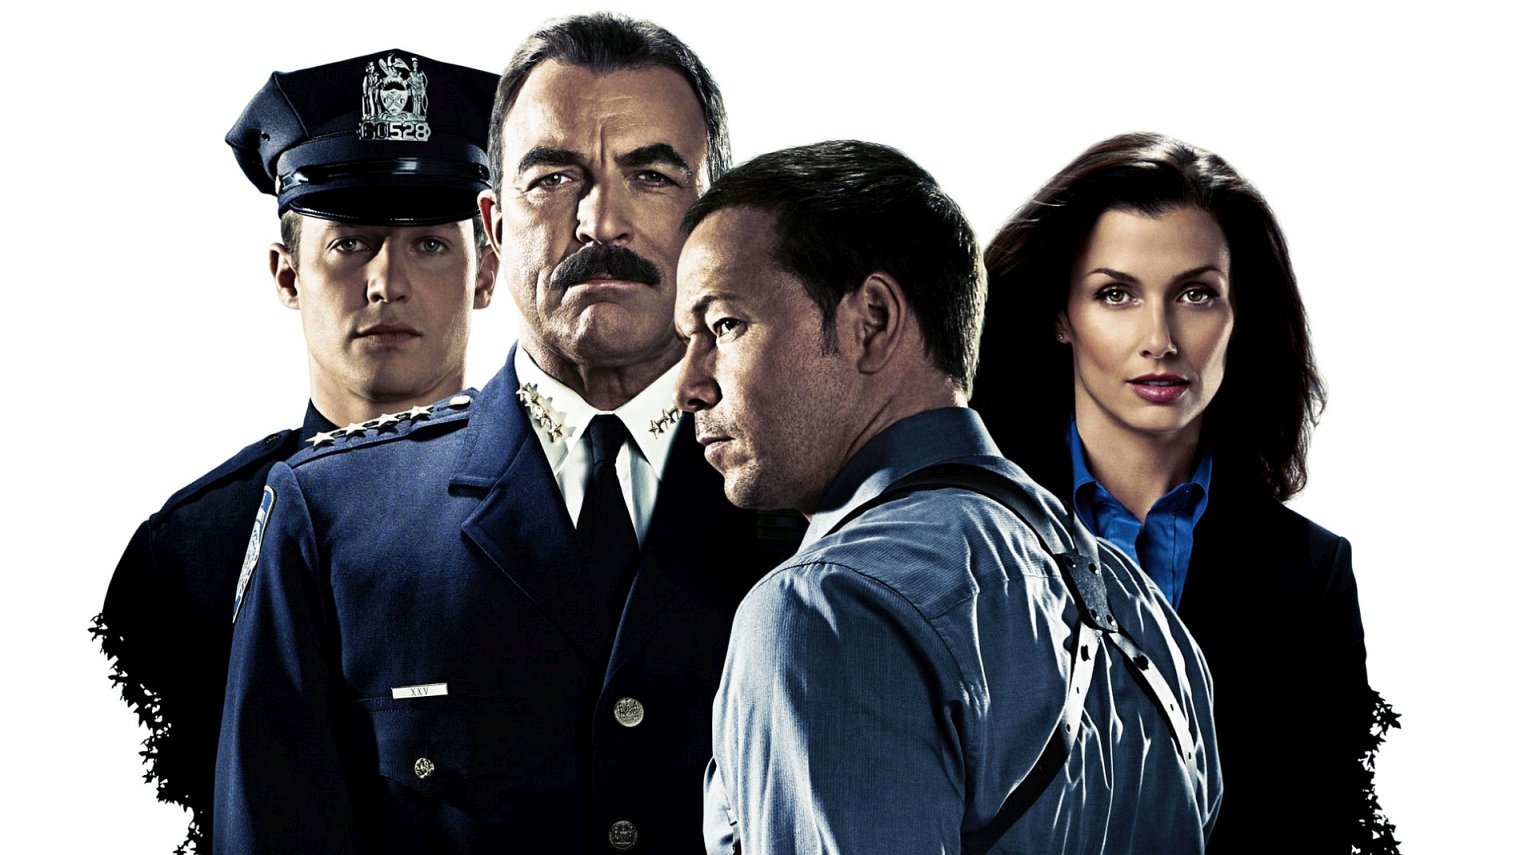 Blue Bloods season 8 episode 4 watch online